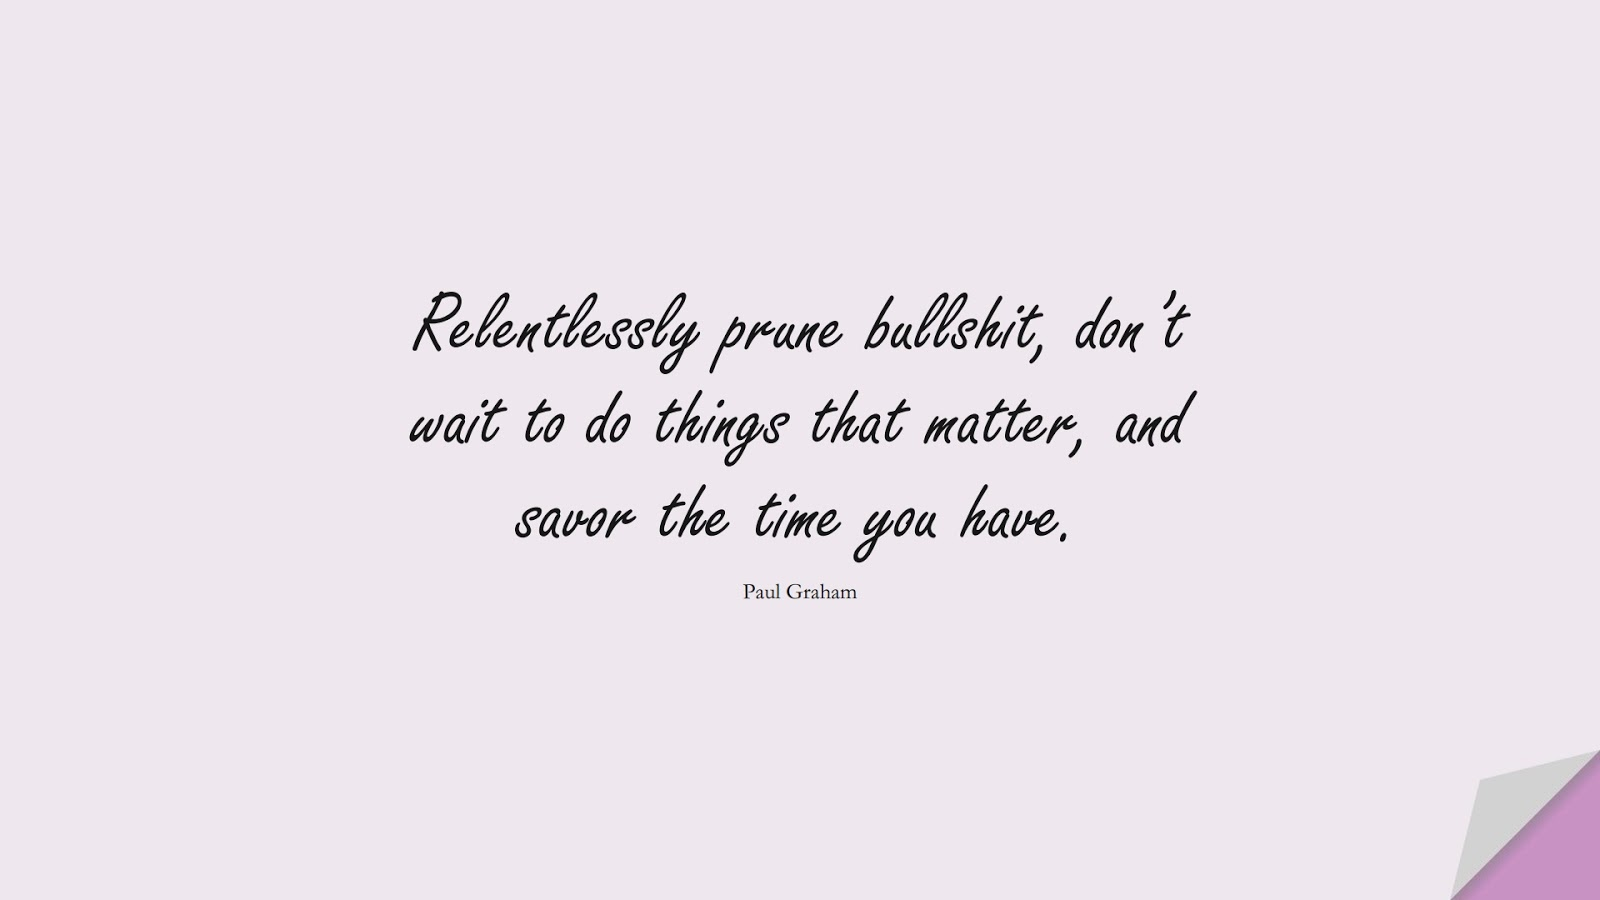 Relentlessly prune bullshit, don't wait to do things that matter, and savor the time you have. (Paul Graham);  #StoicQuotes